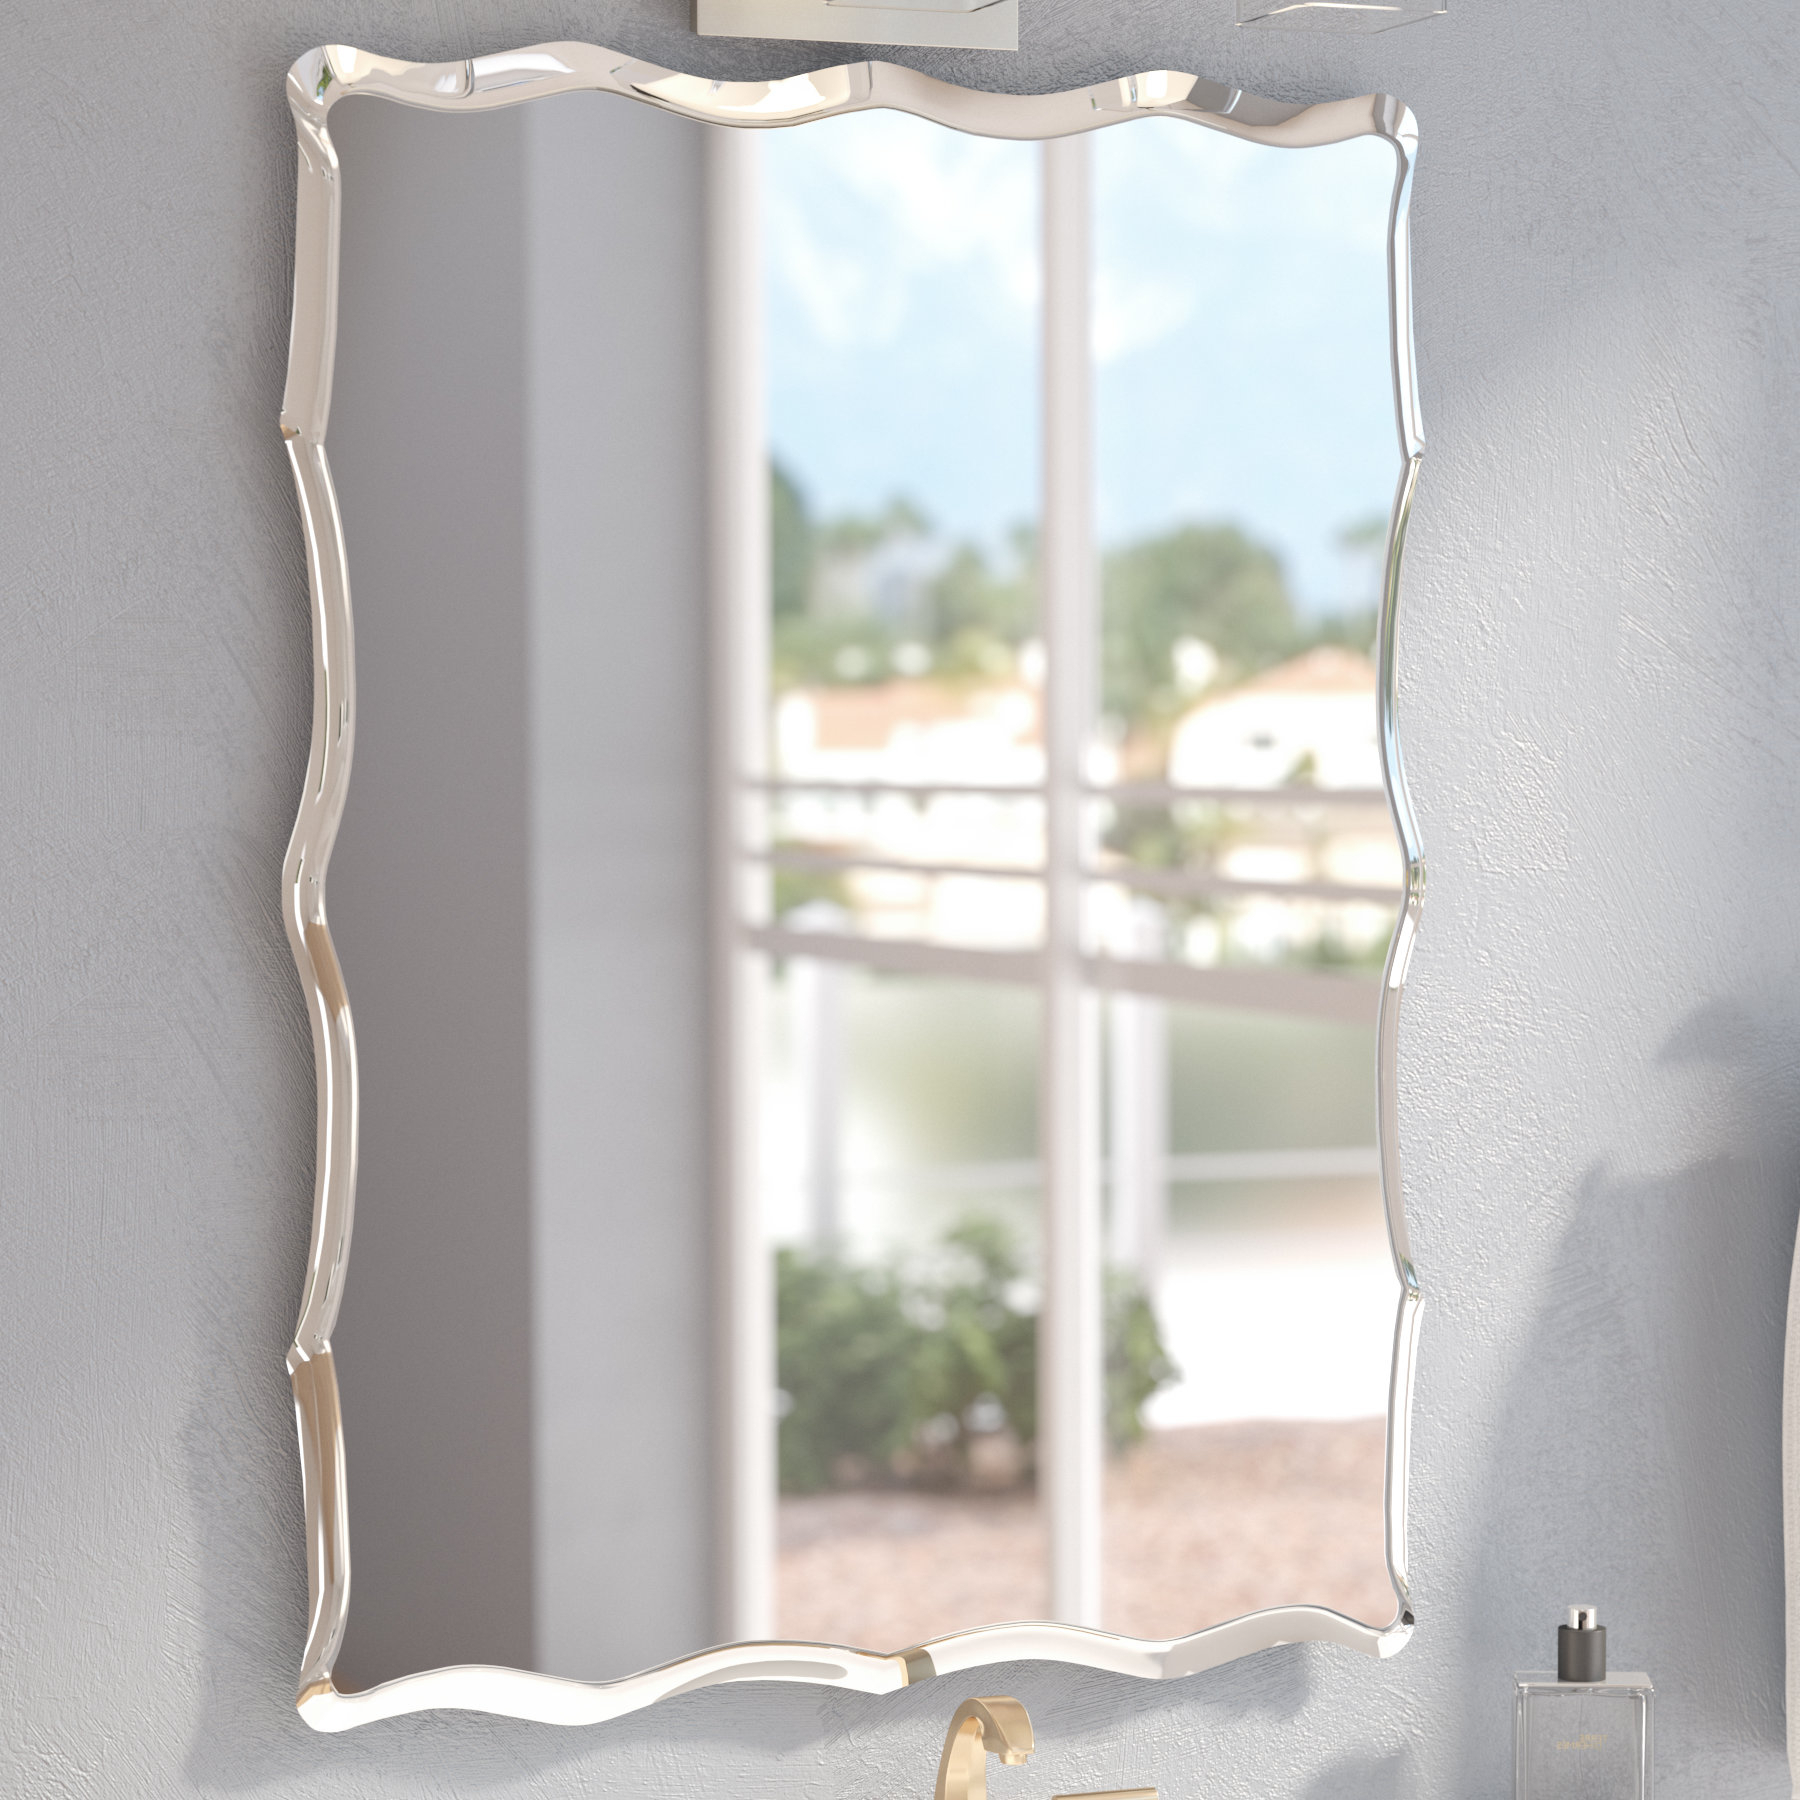 Pennsburg Rectangle Wall Mirrors Intended For Latest Wall Mirror With Crystals (View 19 of 20)